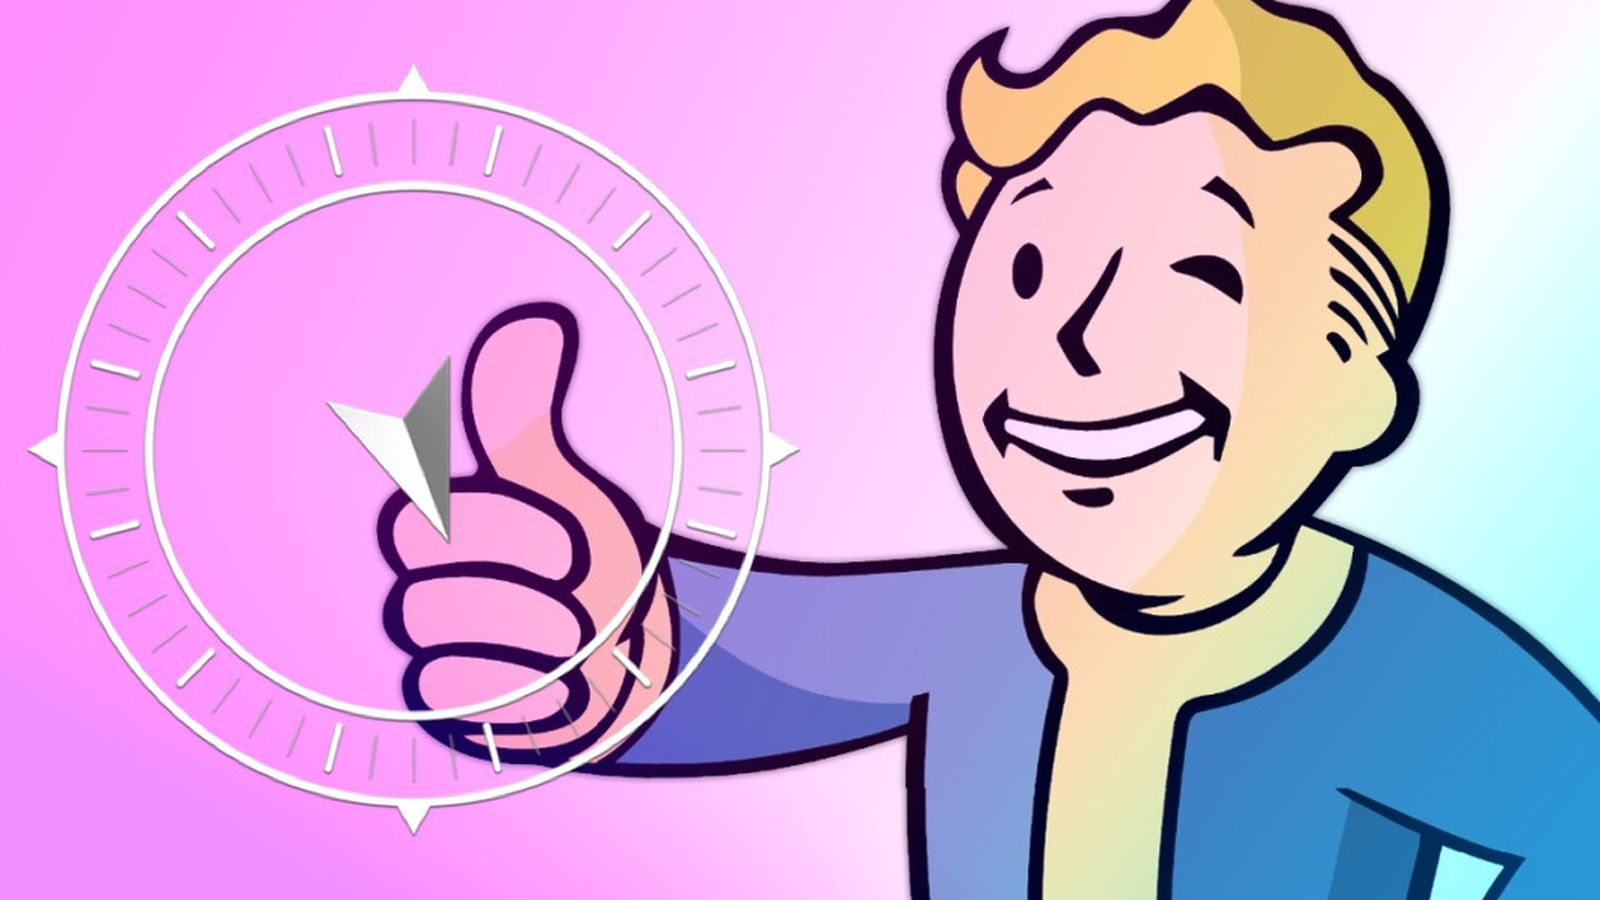 Fallout 4, Call of Duty, free anime, Watch Dogs, Quantum Break and a new Pokémon